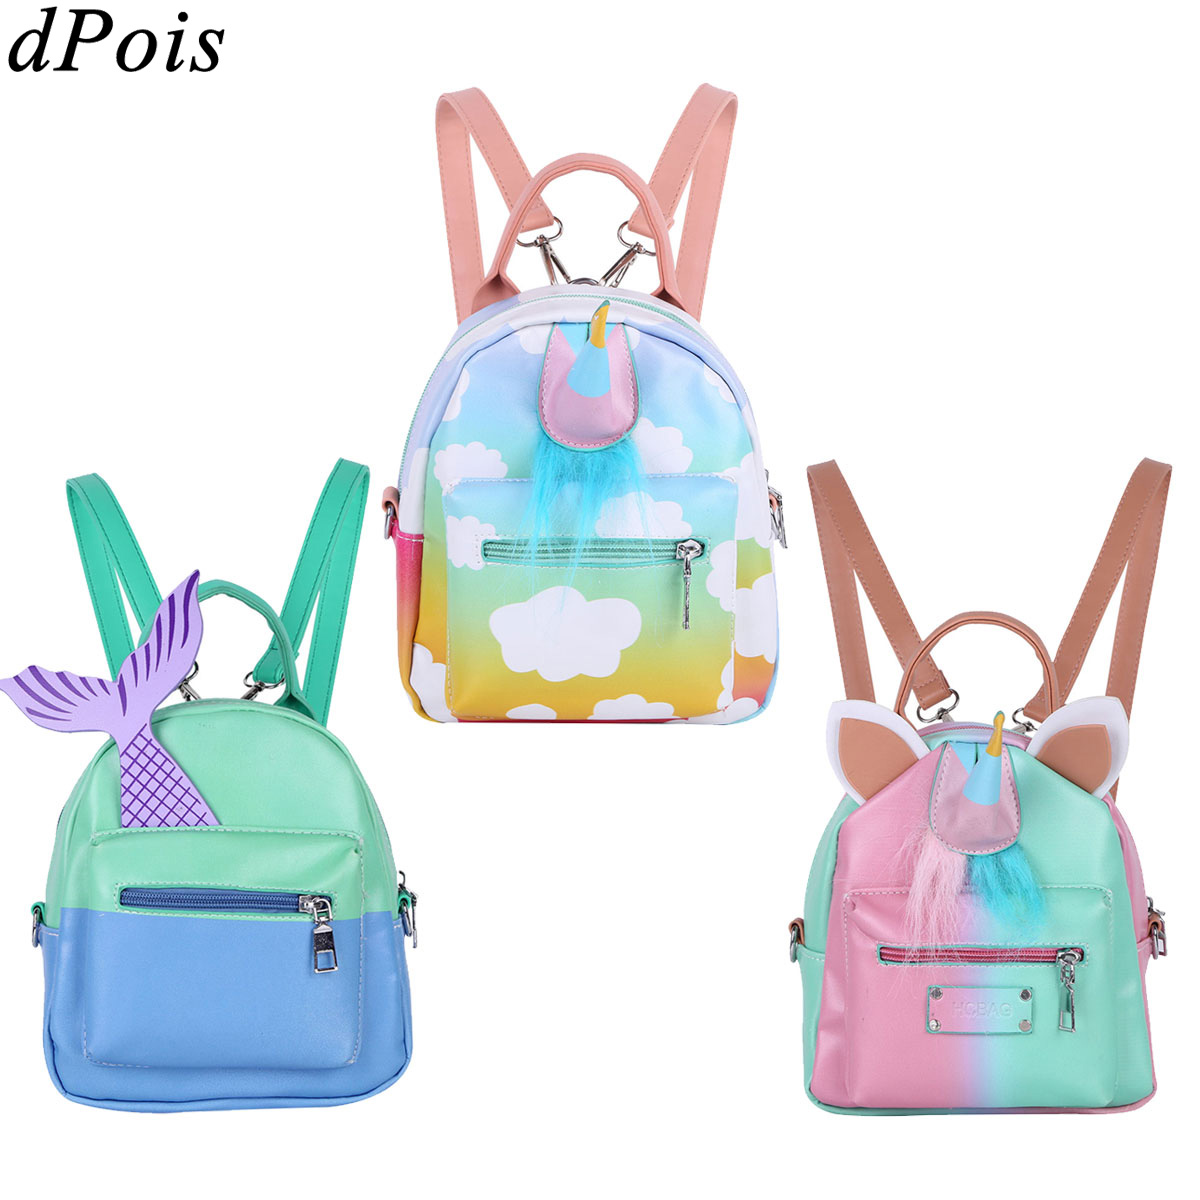 Kids Gym Bag Travel Bags Gilrs PU Leather Cute Cartoon Animal Horn Mini Backpacks Colorful Shoulder Bag Lovely Sports Bags